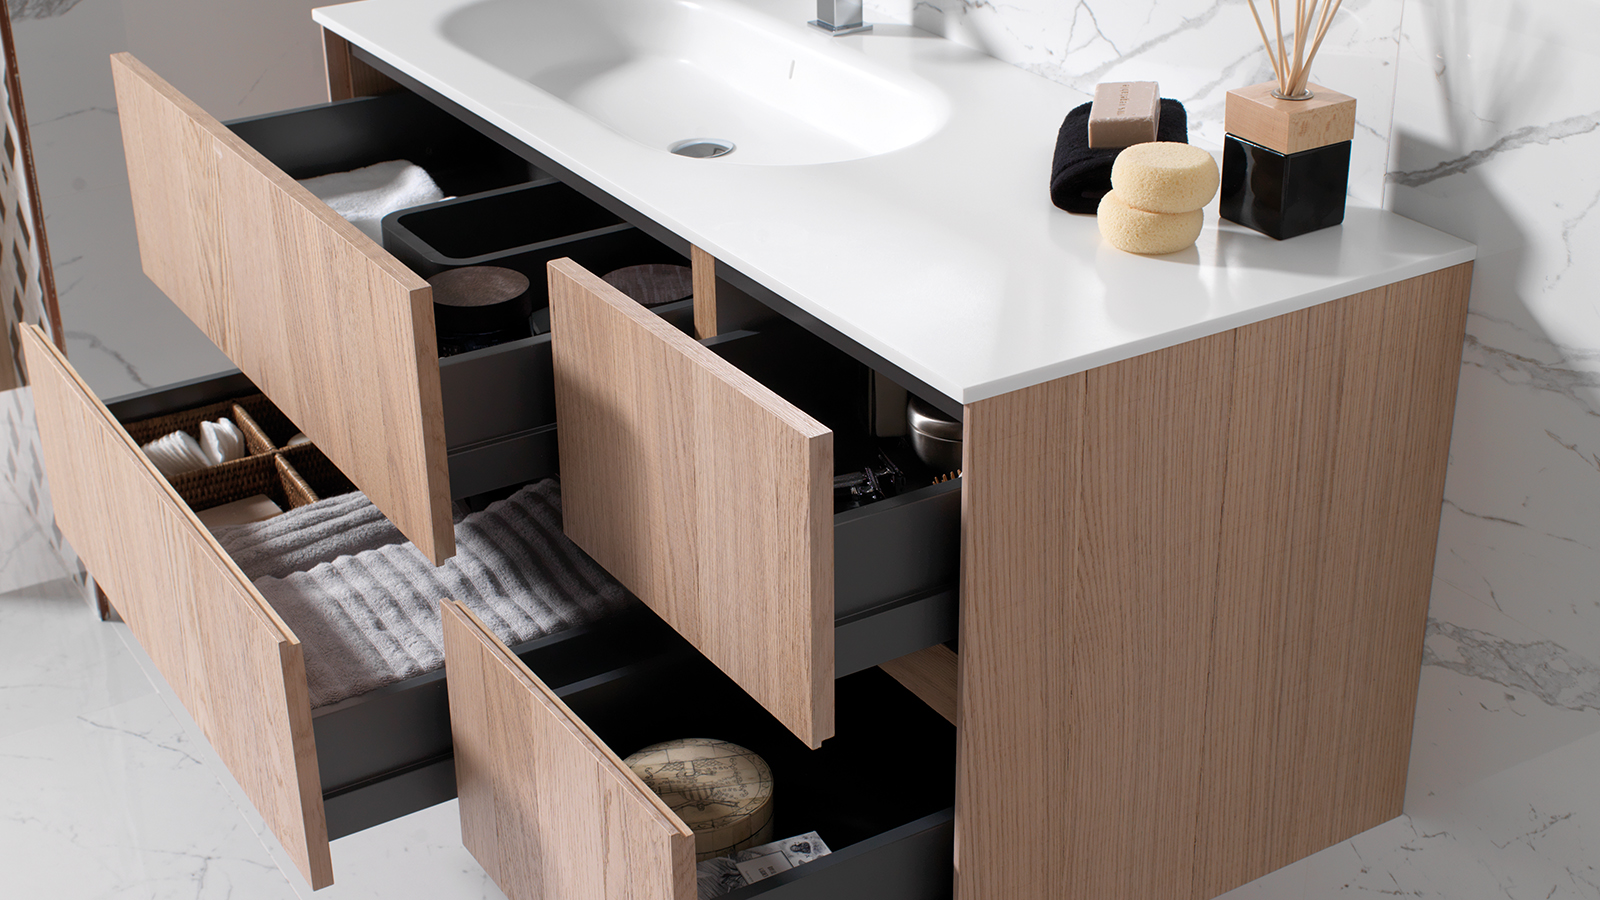 UP pure oak unit 120 cm + Last Gamadecor Porcelanosa-3